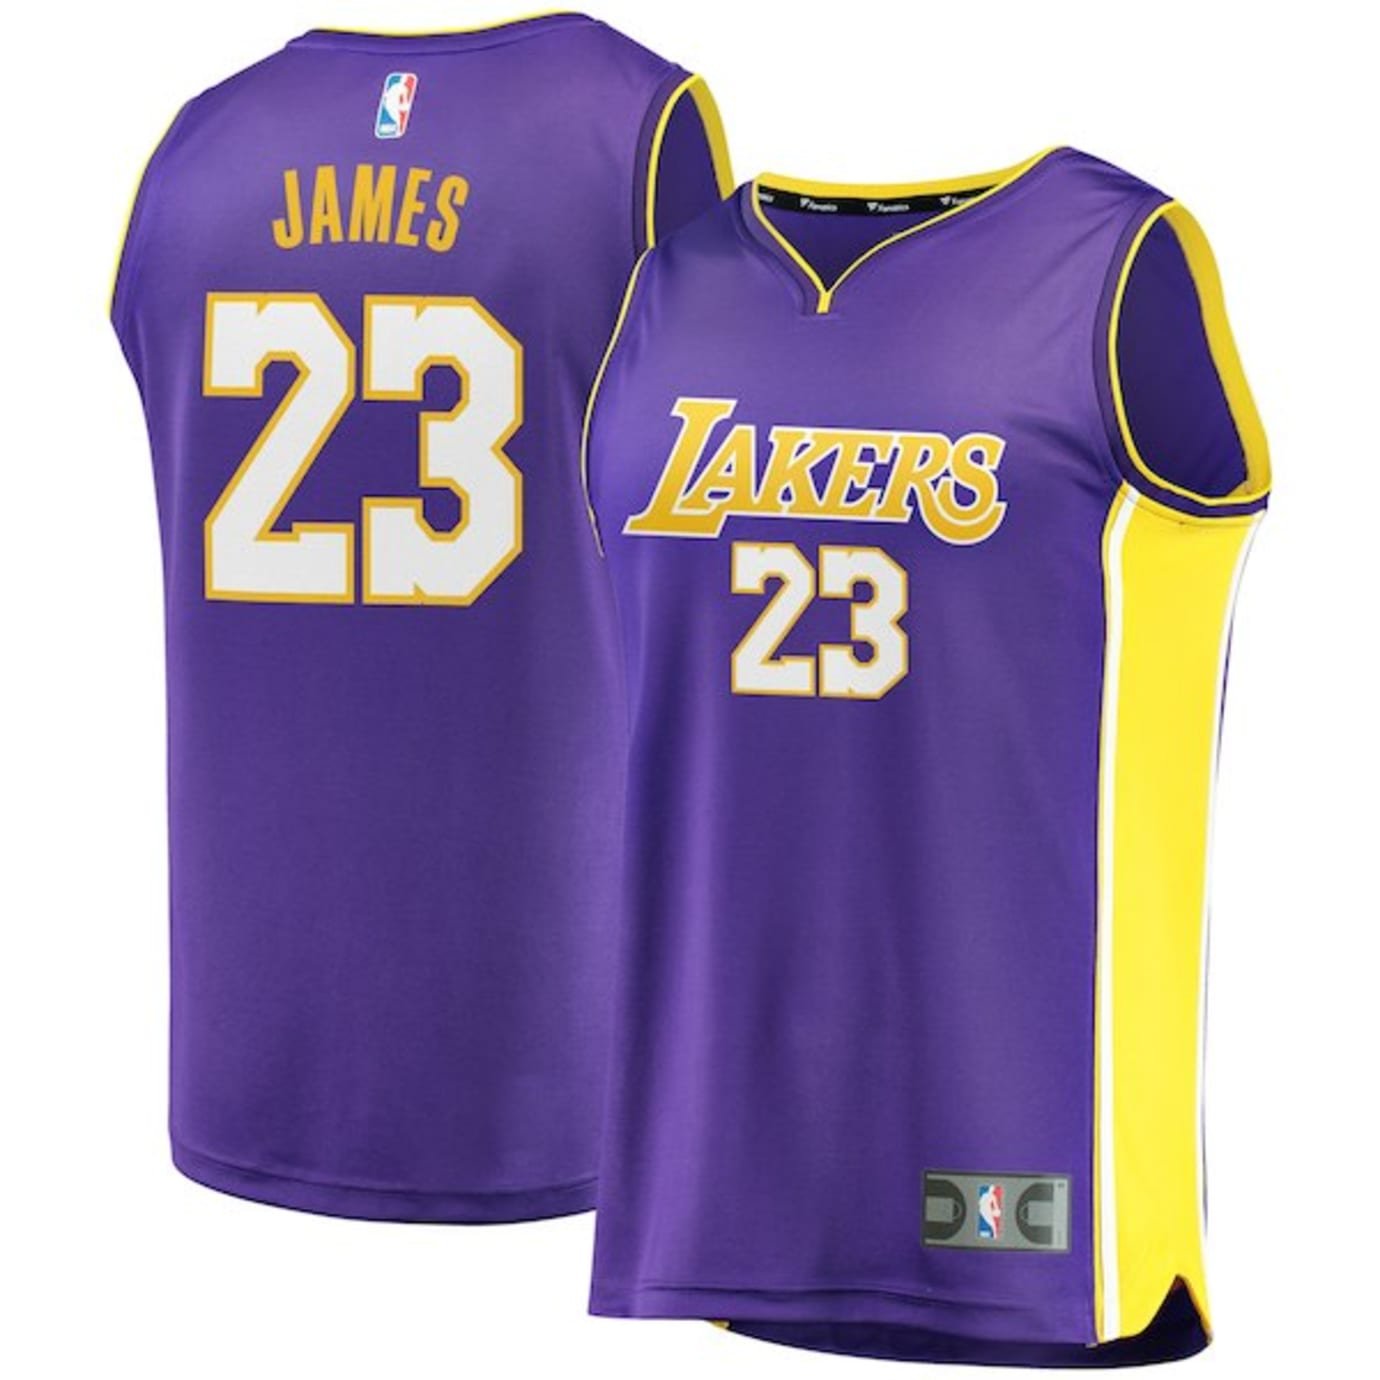 LeBron James Los Angeles Lakers Jerseys Selling Out   Sole Collector